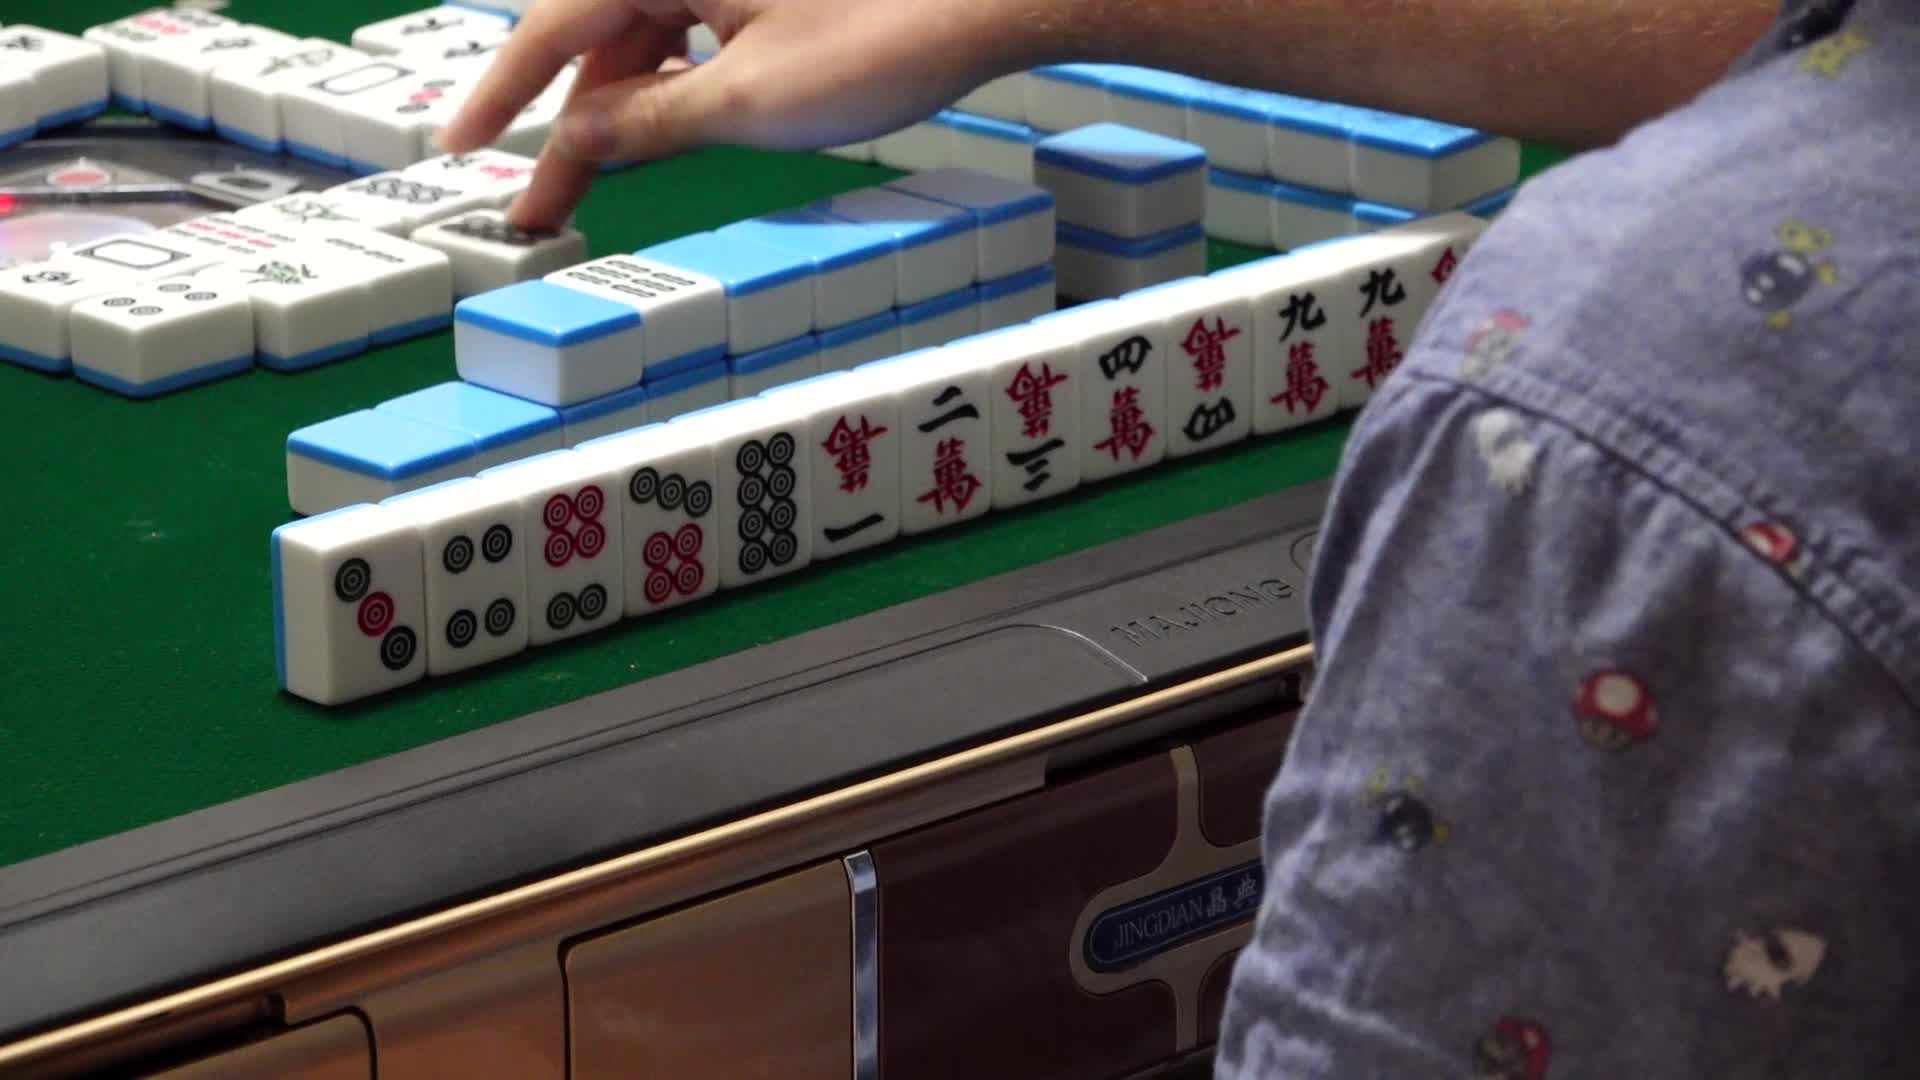 Philly's mahjong club brings a time-honored game to bottle shops